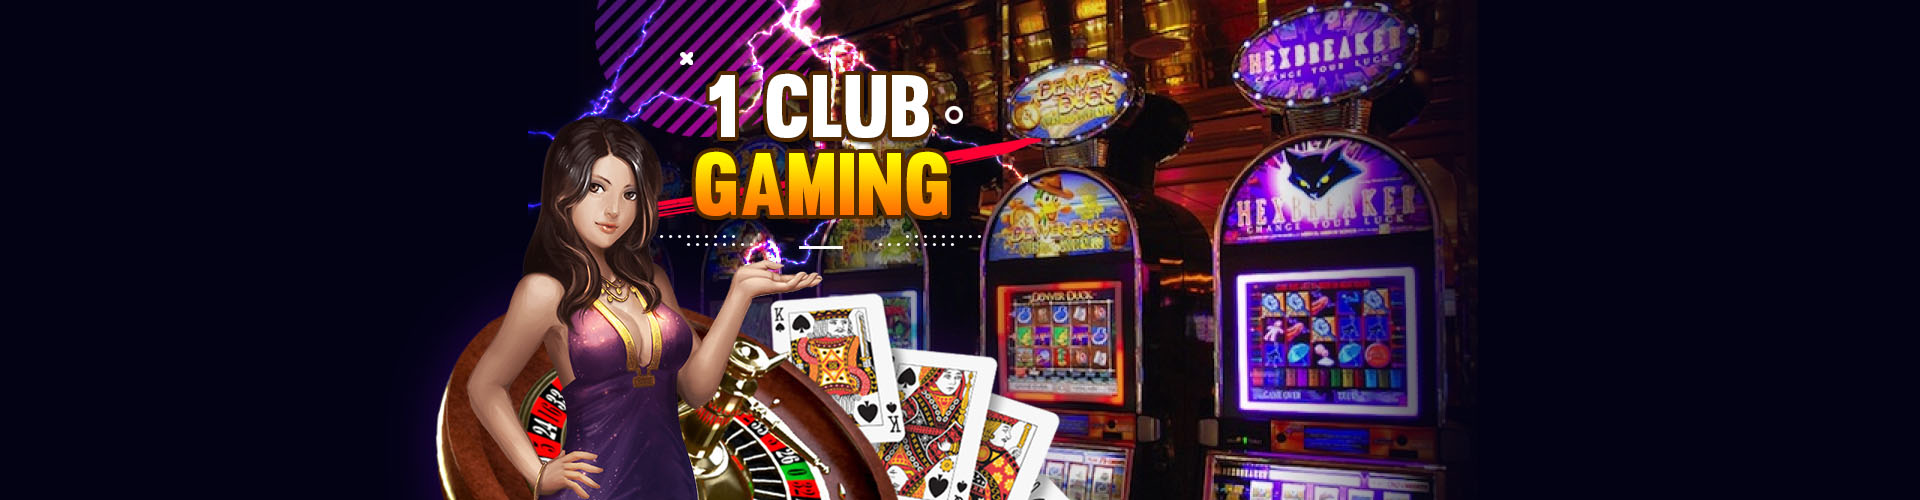 1Club Gaming